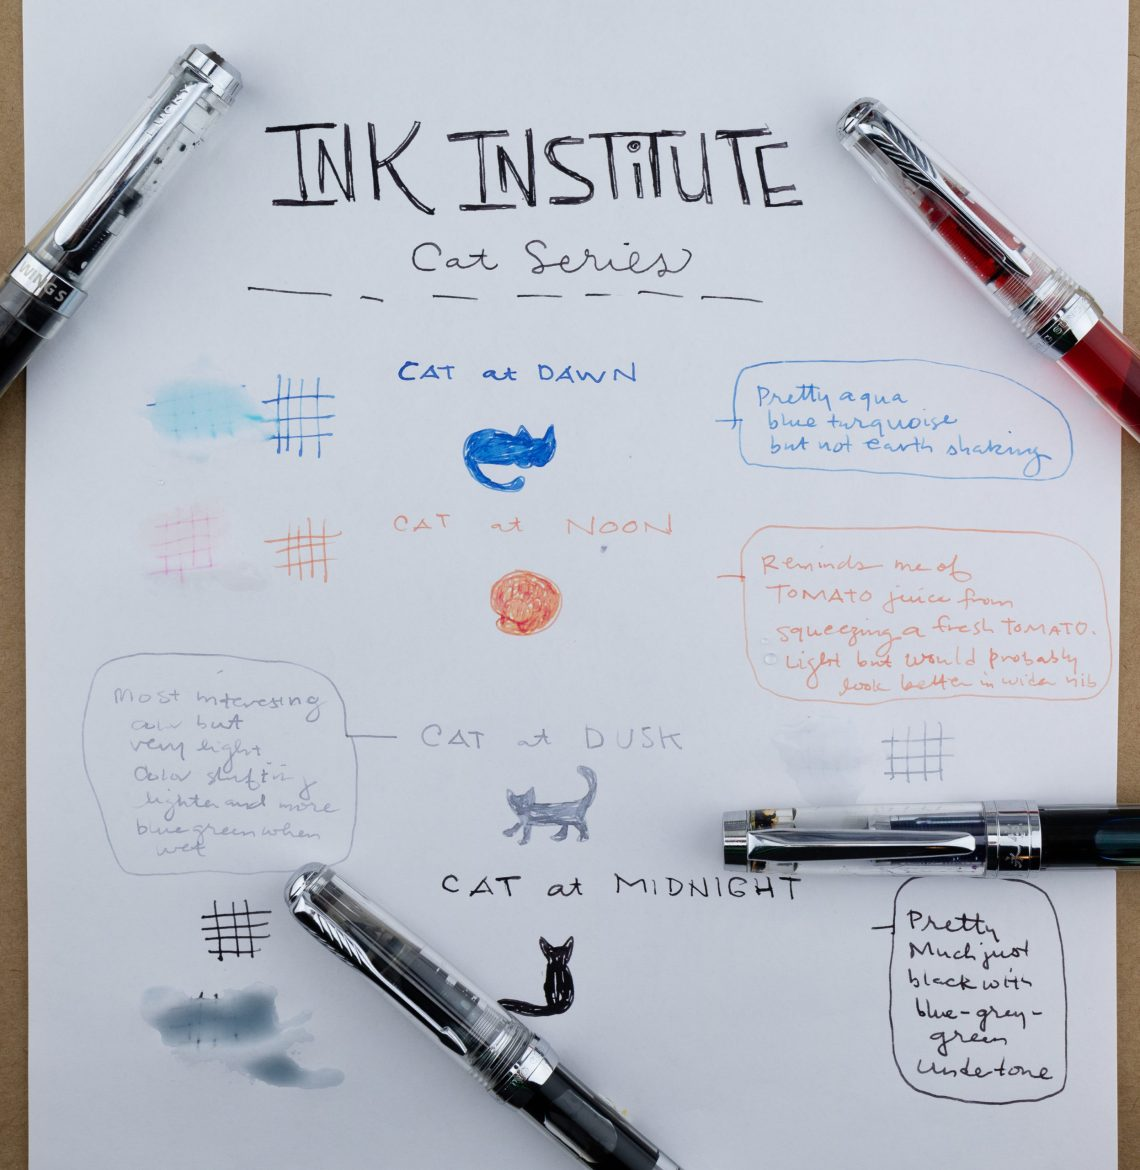 Ink Institute Cat Series